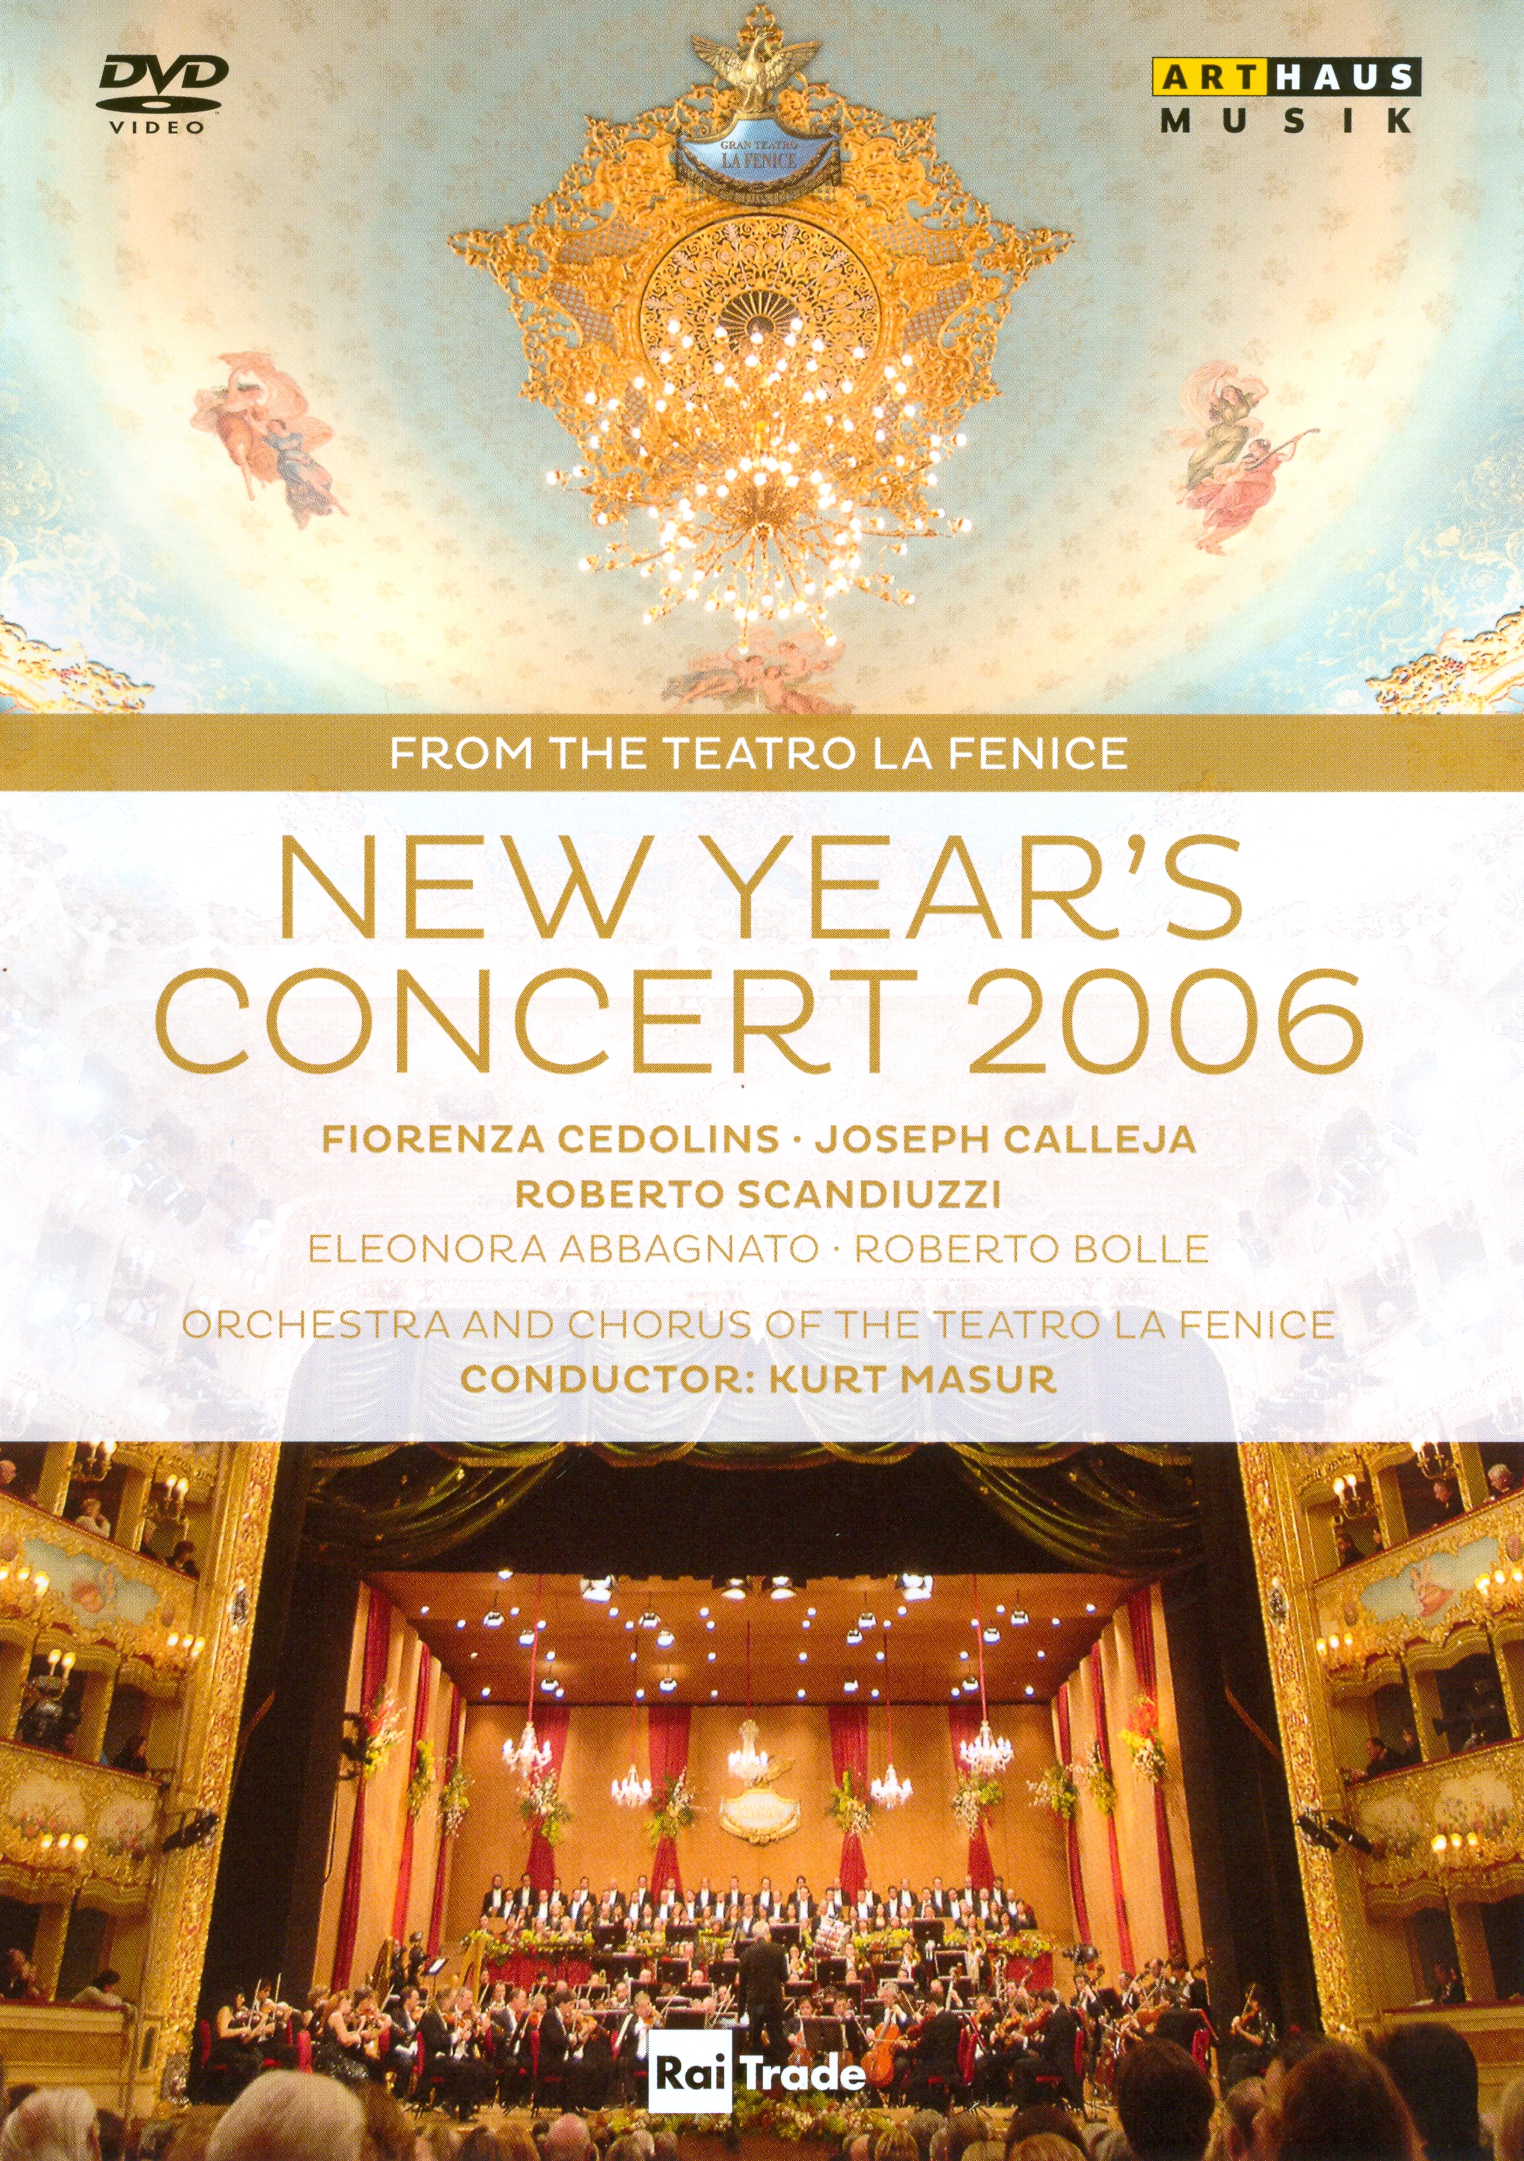 New Year's Concert 2006 from the Teatro La Fenice